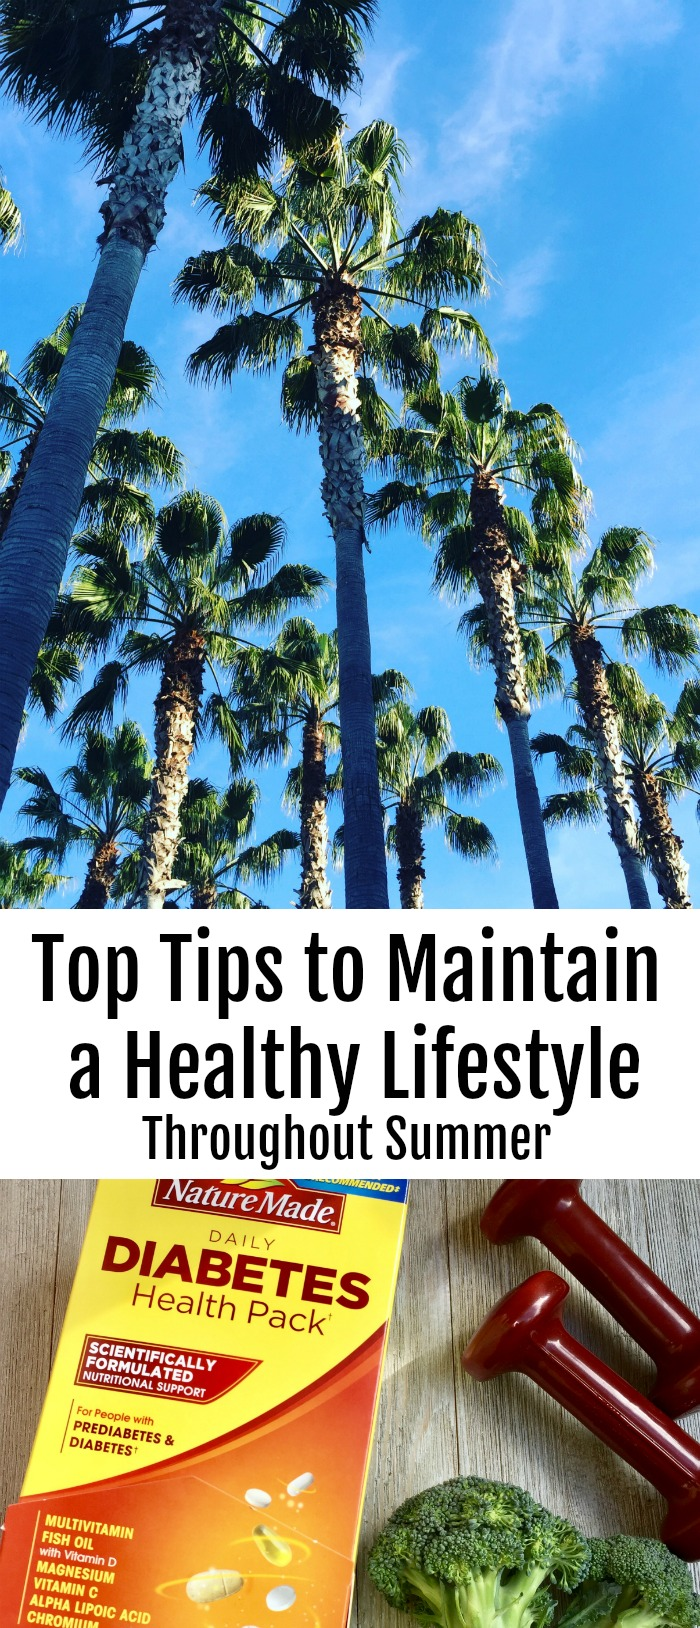 Top Tips to Maintain a Healthy Lifestyle Throughout Summer